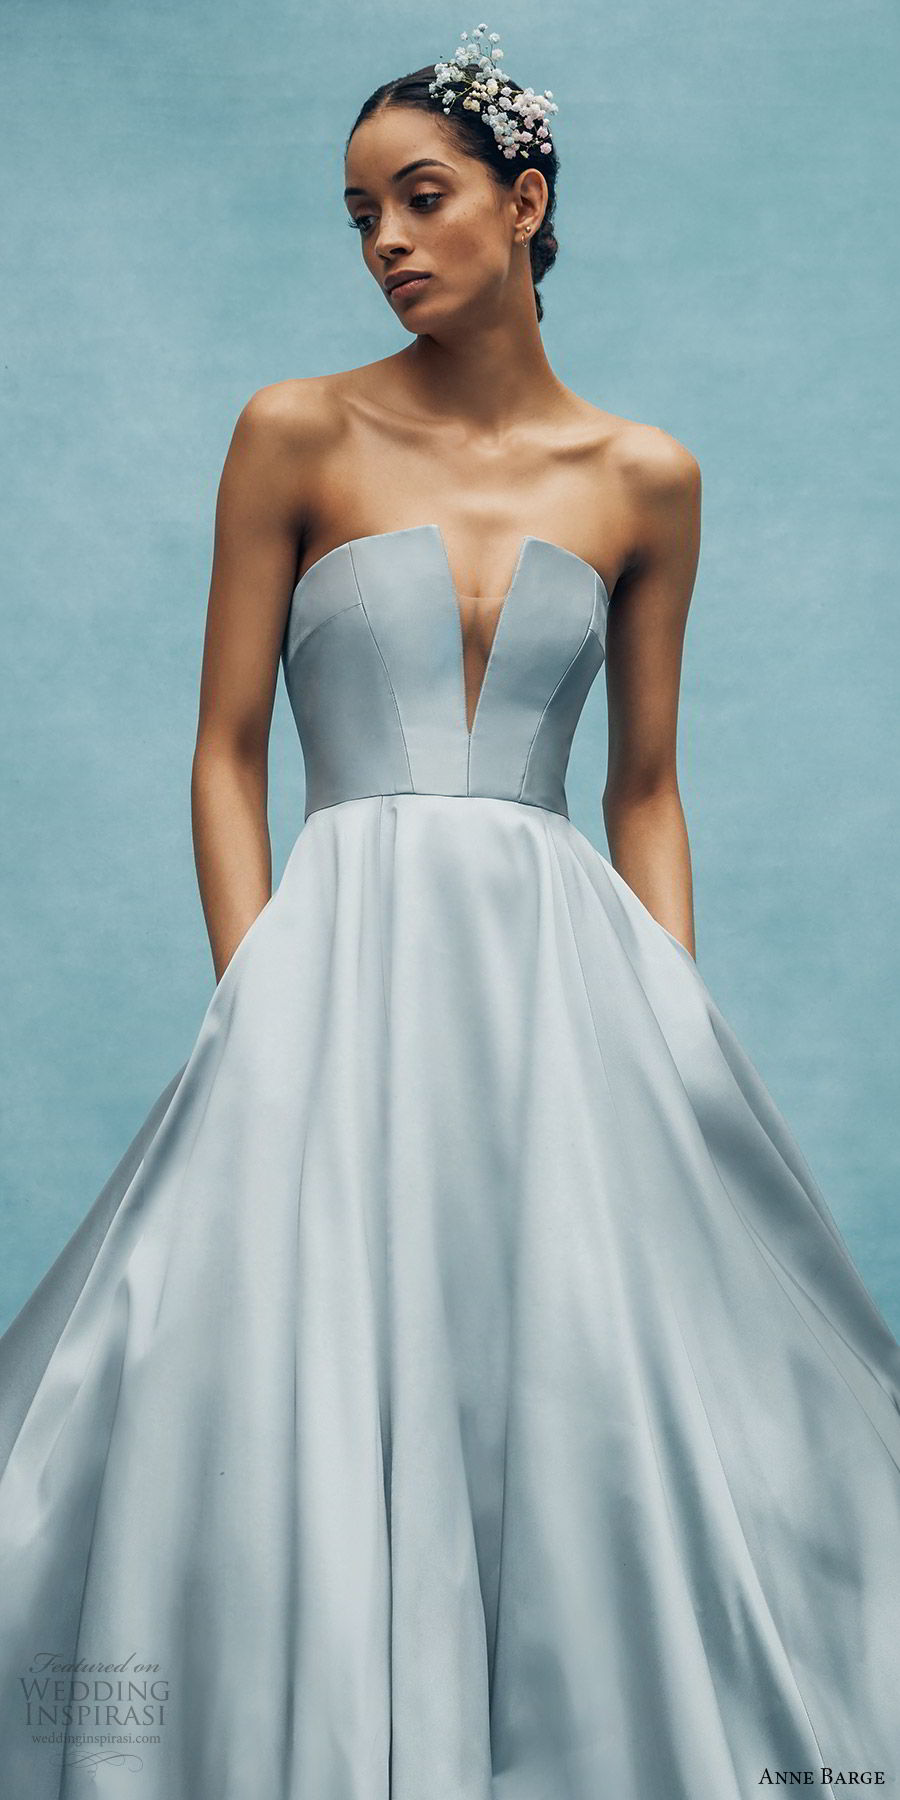 anne barge spring 2020 bridal strapless straight across split v neckline a line ball gown wedding dress (4) elegant minimal modern chapel train blue color zv